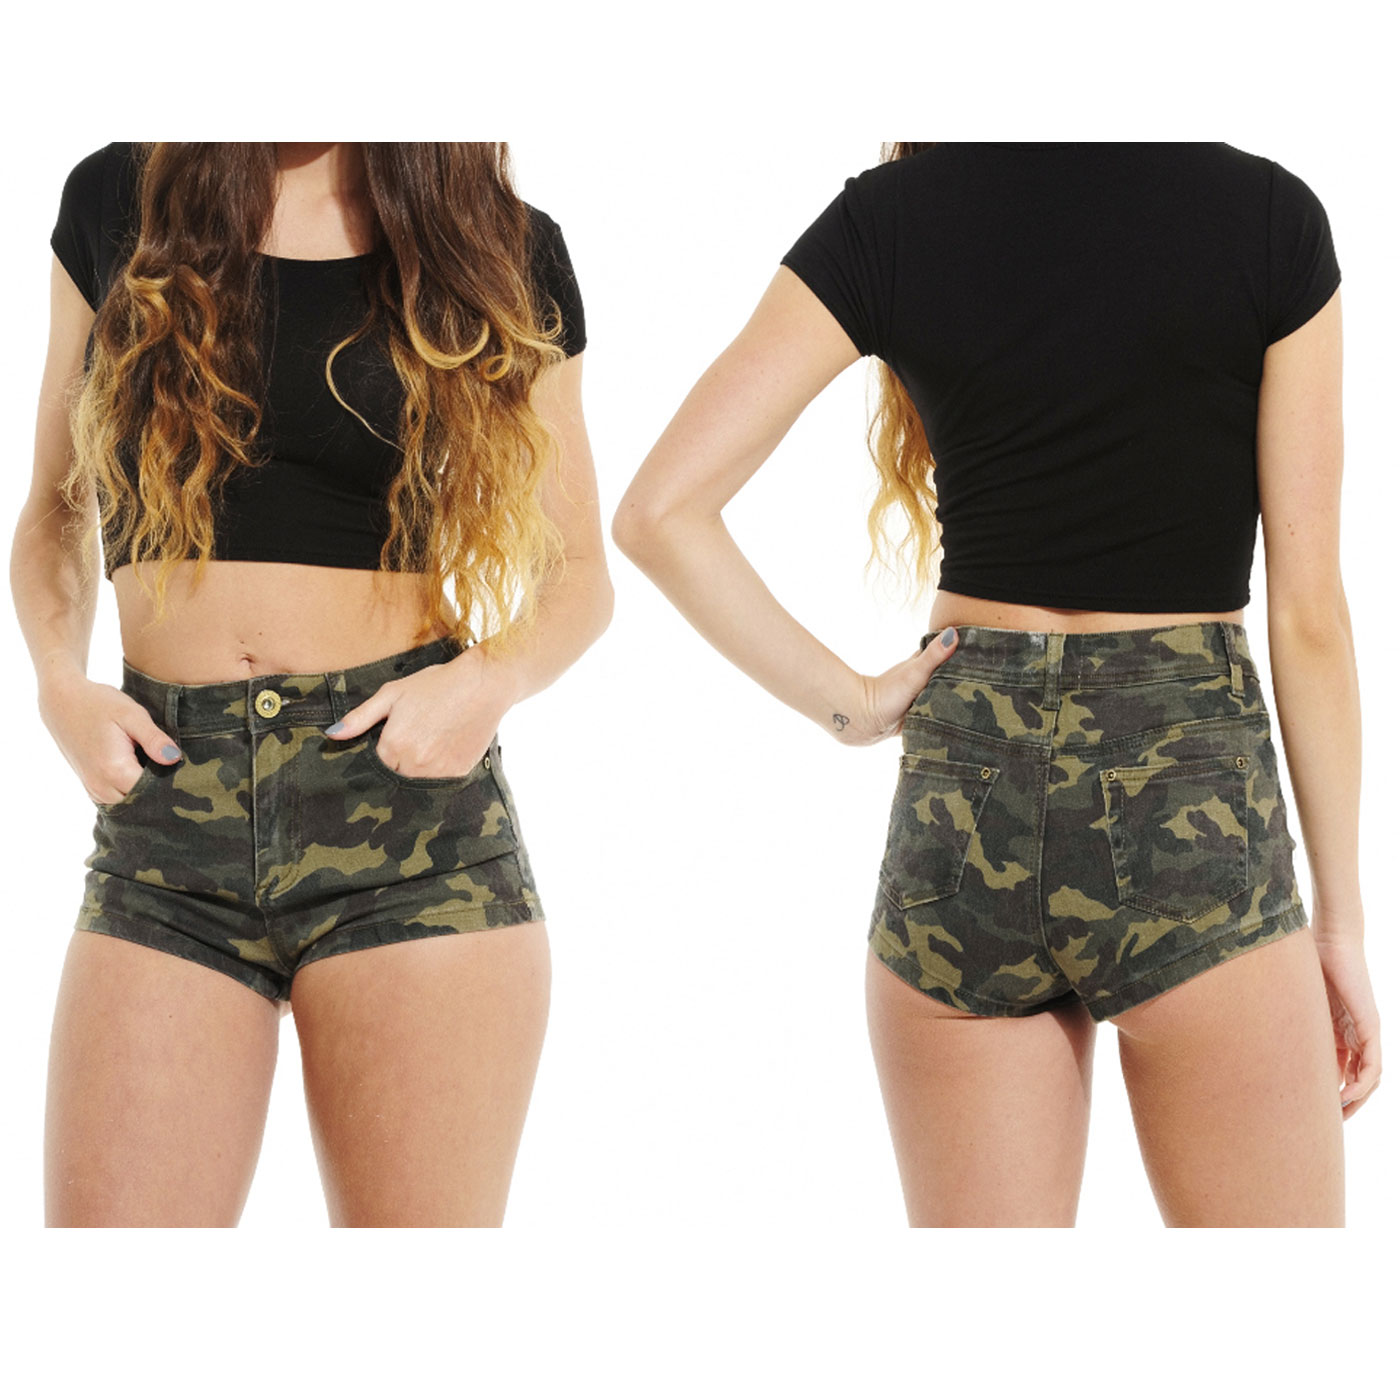 New Ladies Camouflage Military Printed High Waisted Denim Hot ...